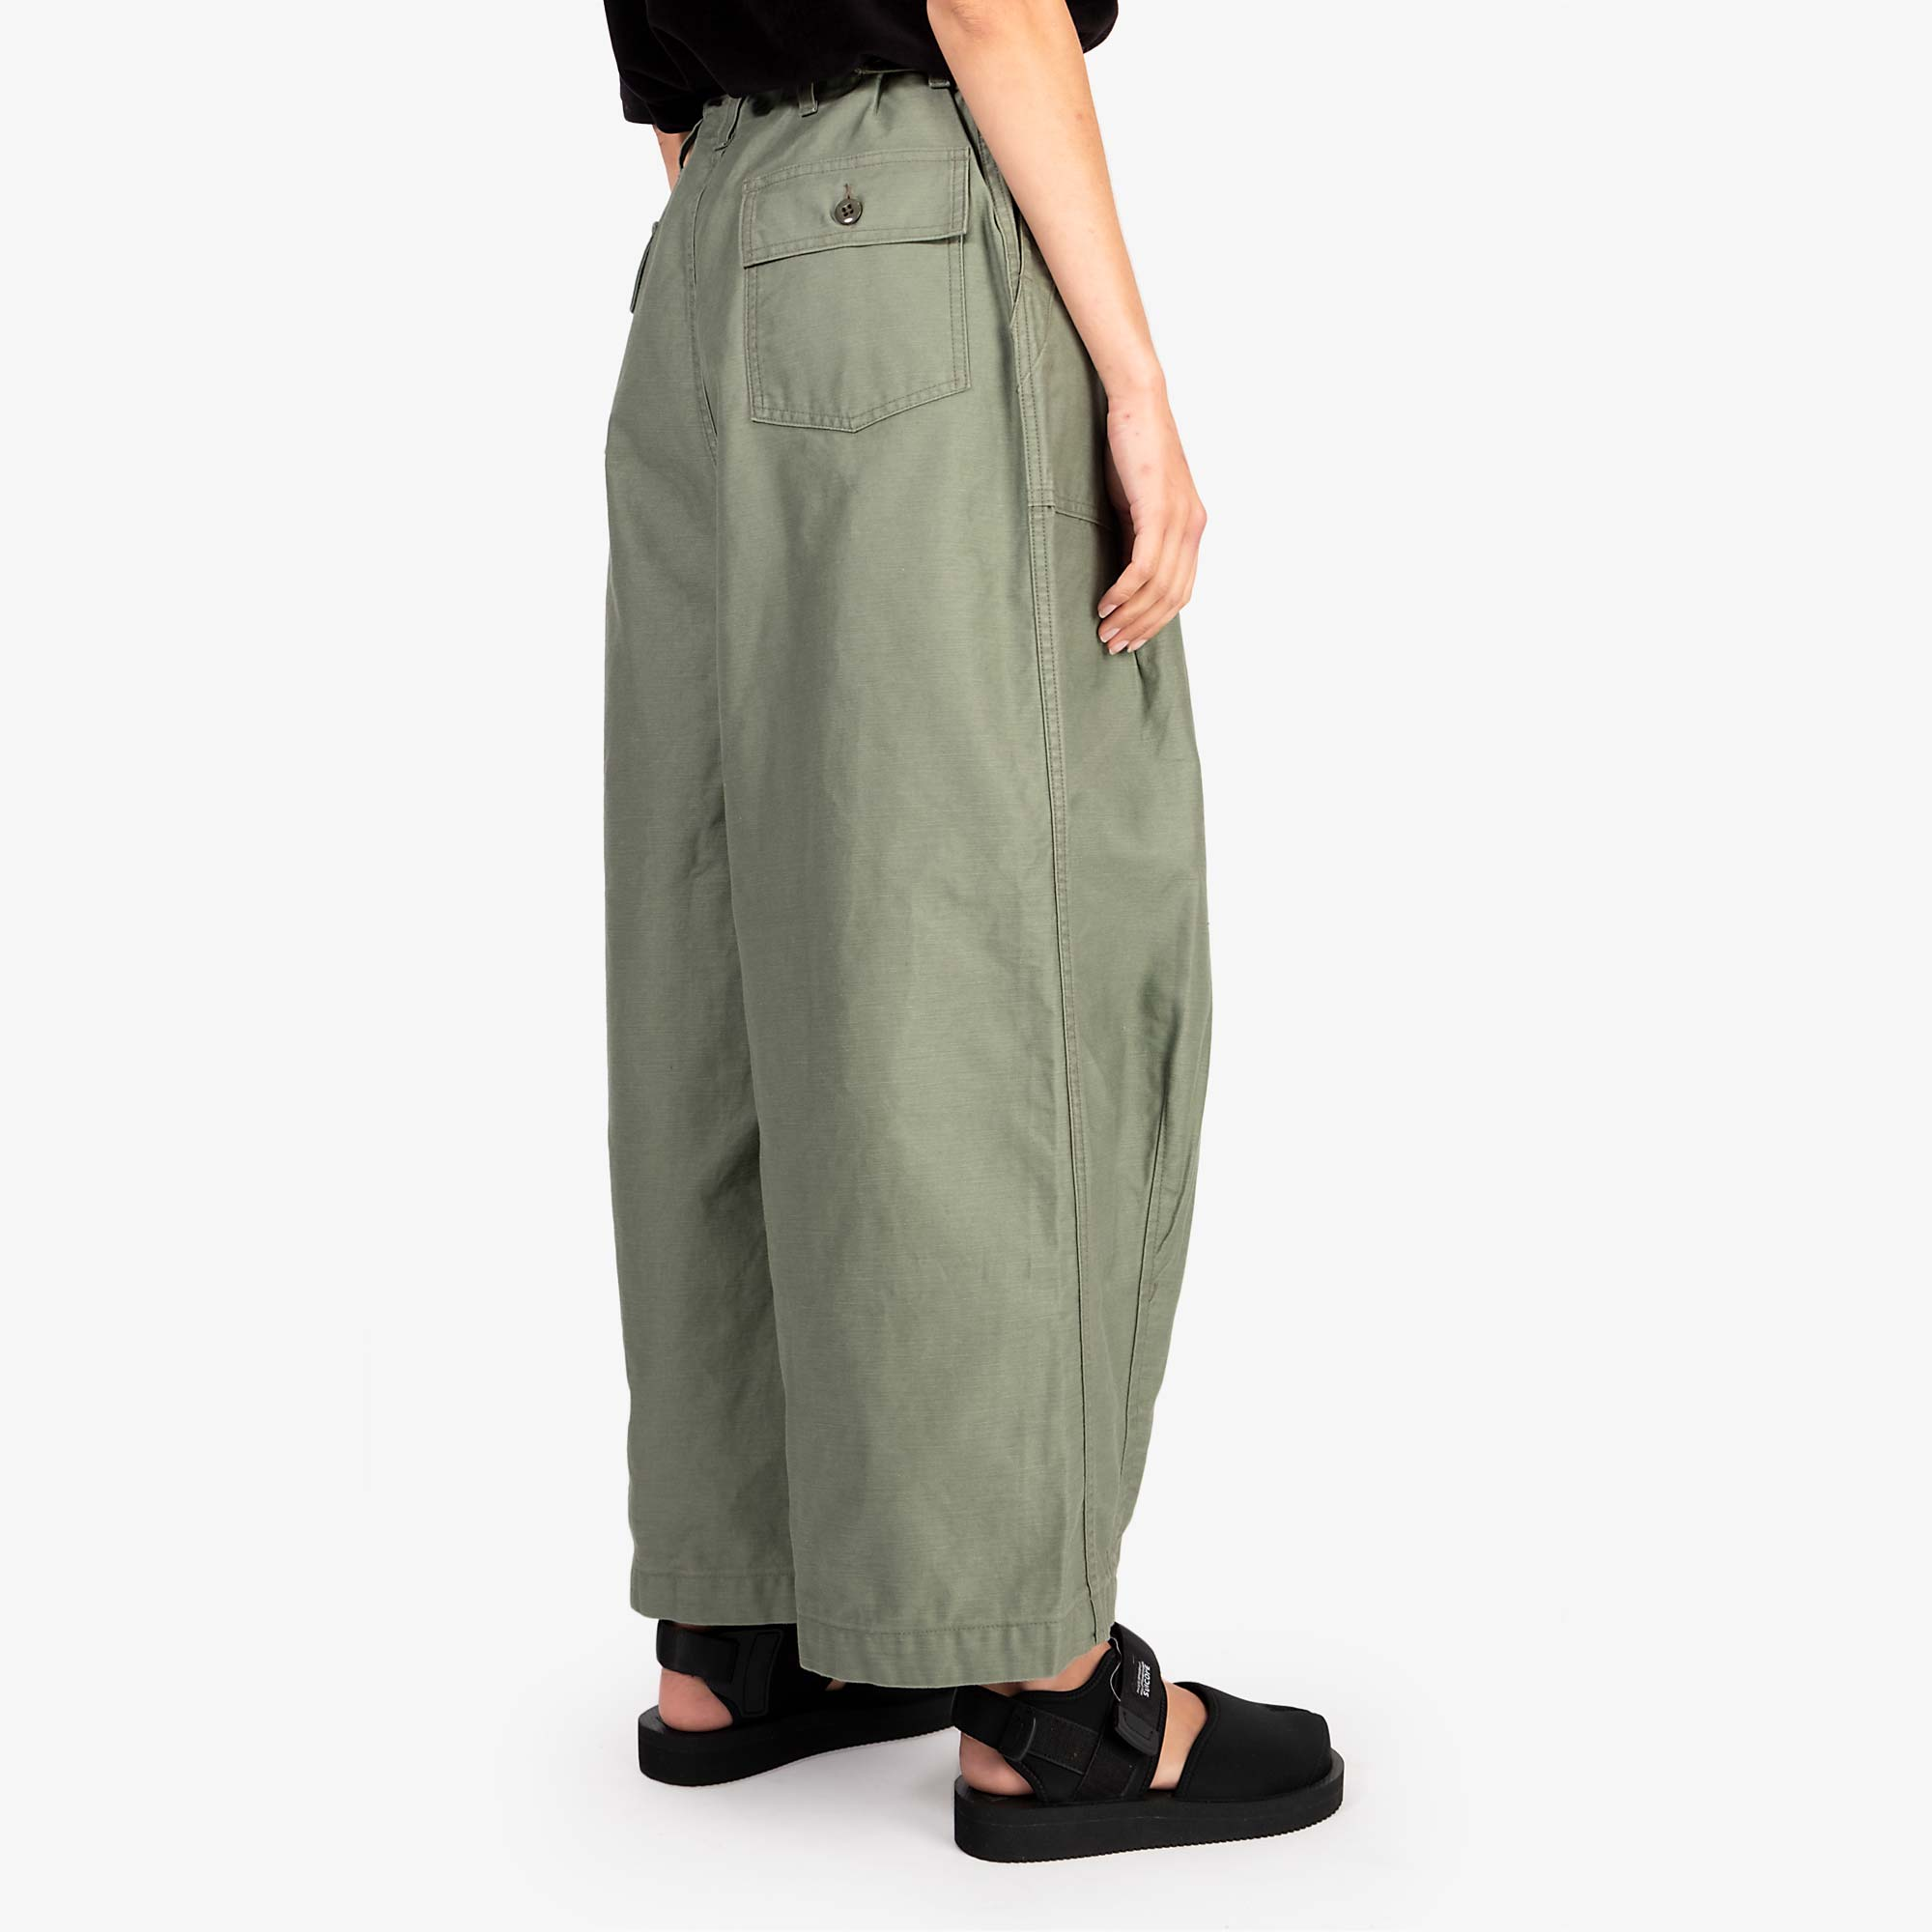 Needles W' H.D. Fatigue Pant - Olive 4